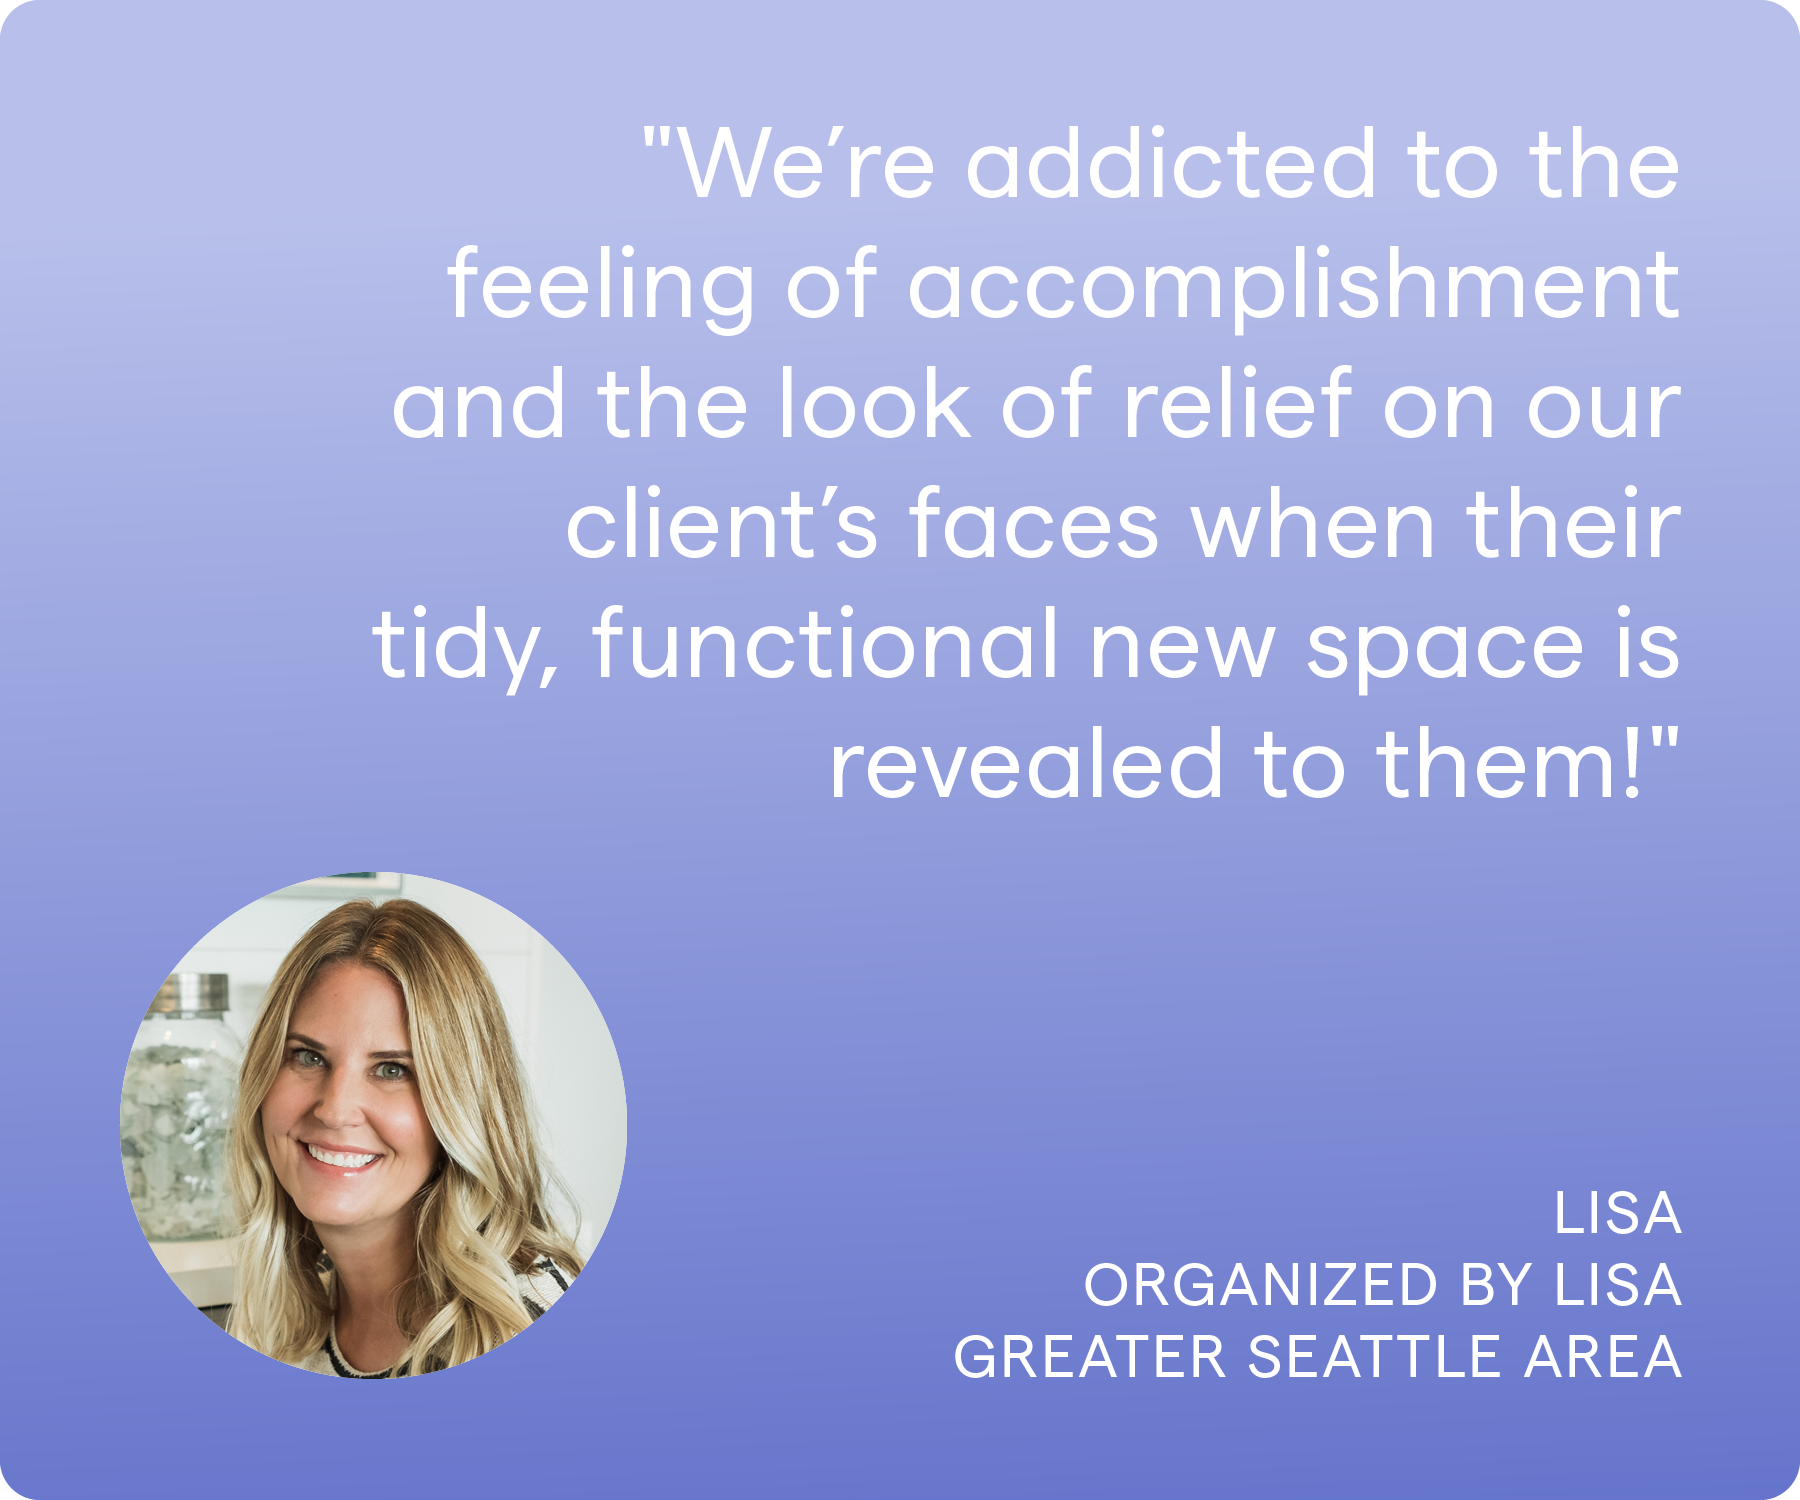 'We're addicted to the feeling of accomplishment and the look of relief on our client's faces when their tidy, functional new space is revealed to them.' Lisa, Organized by Lisa, Greater Seattle/Bellevue